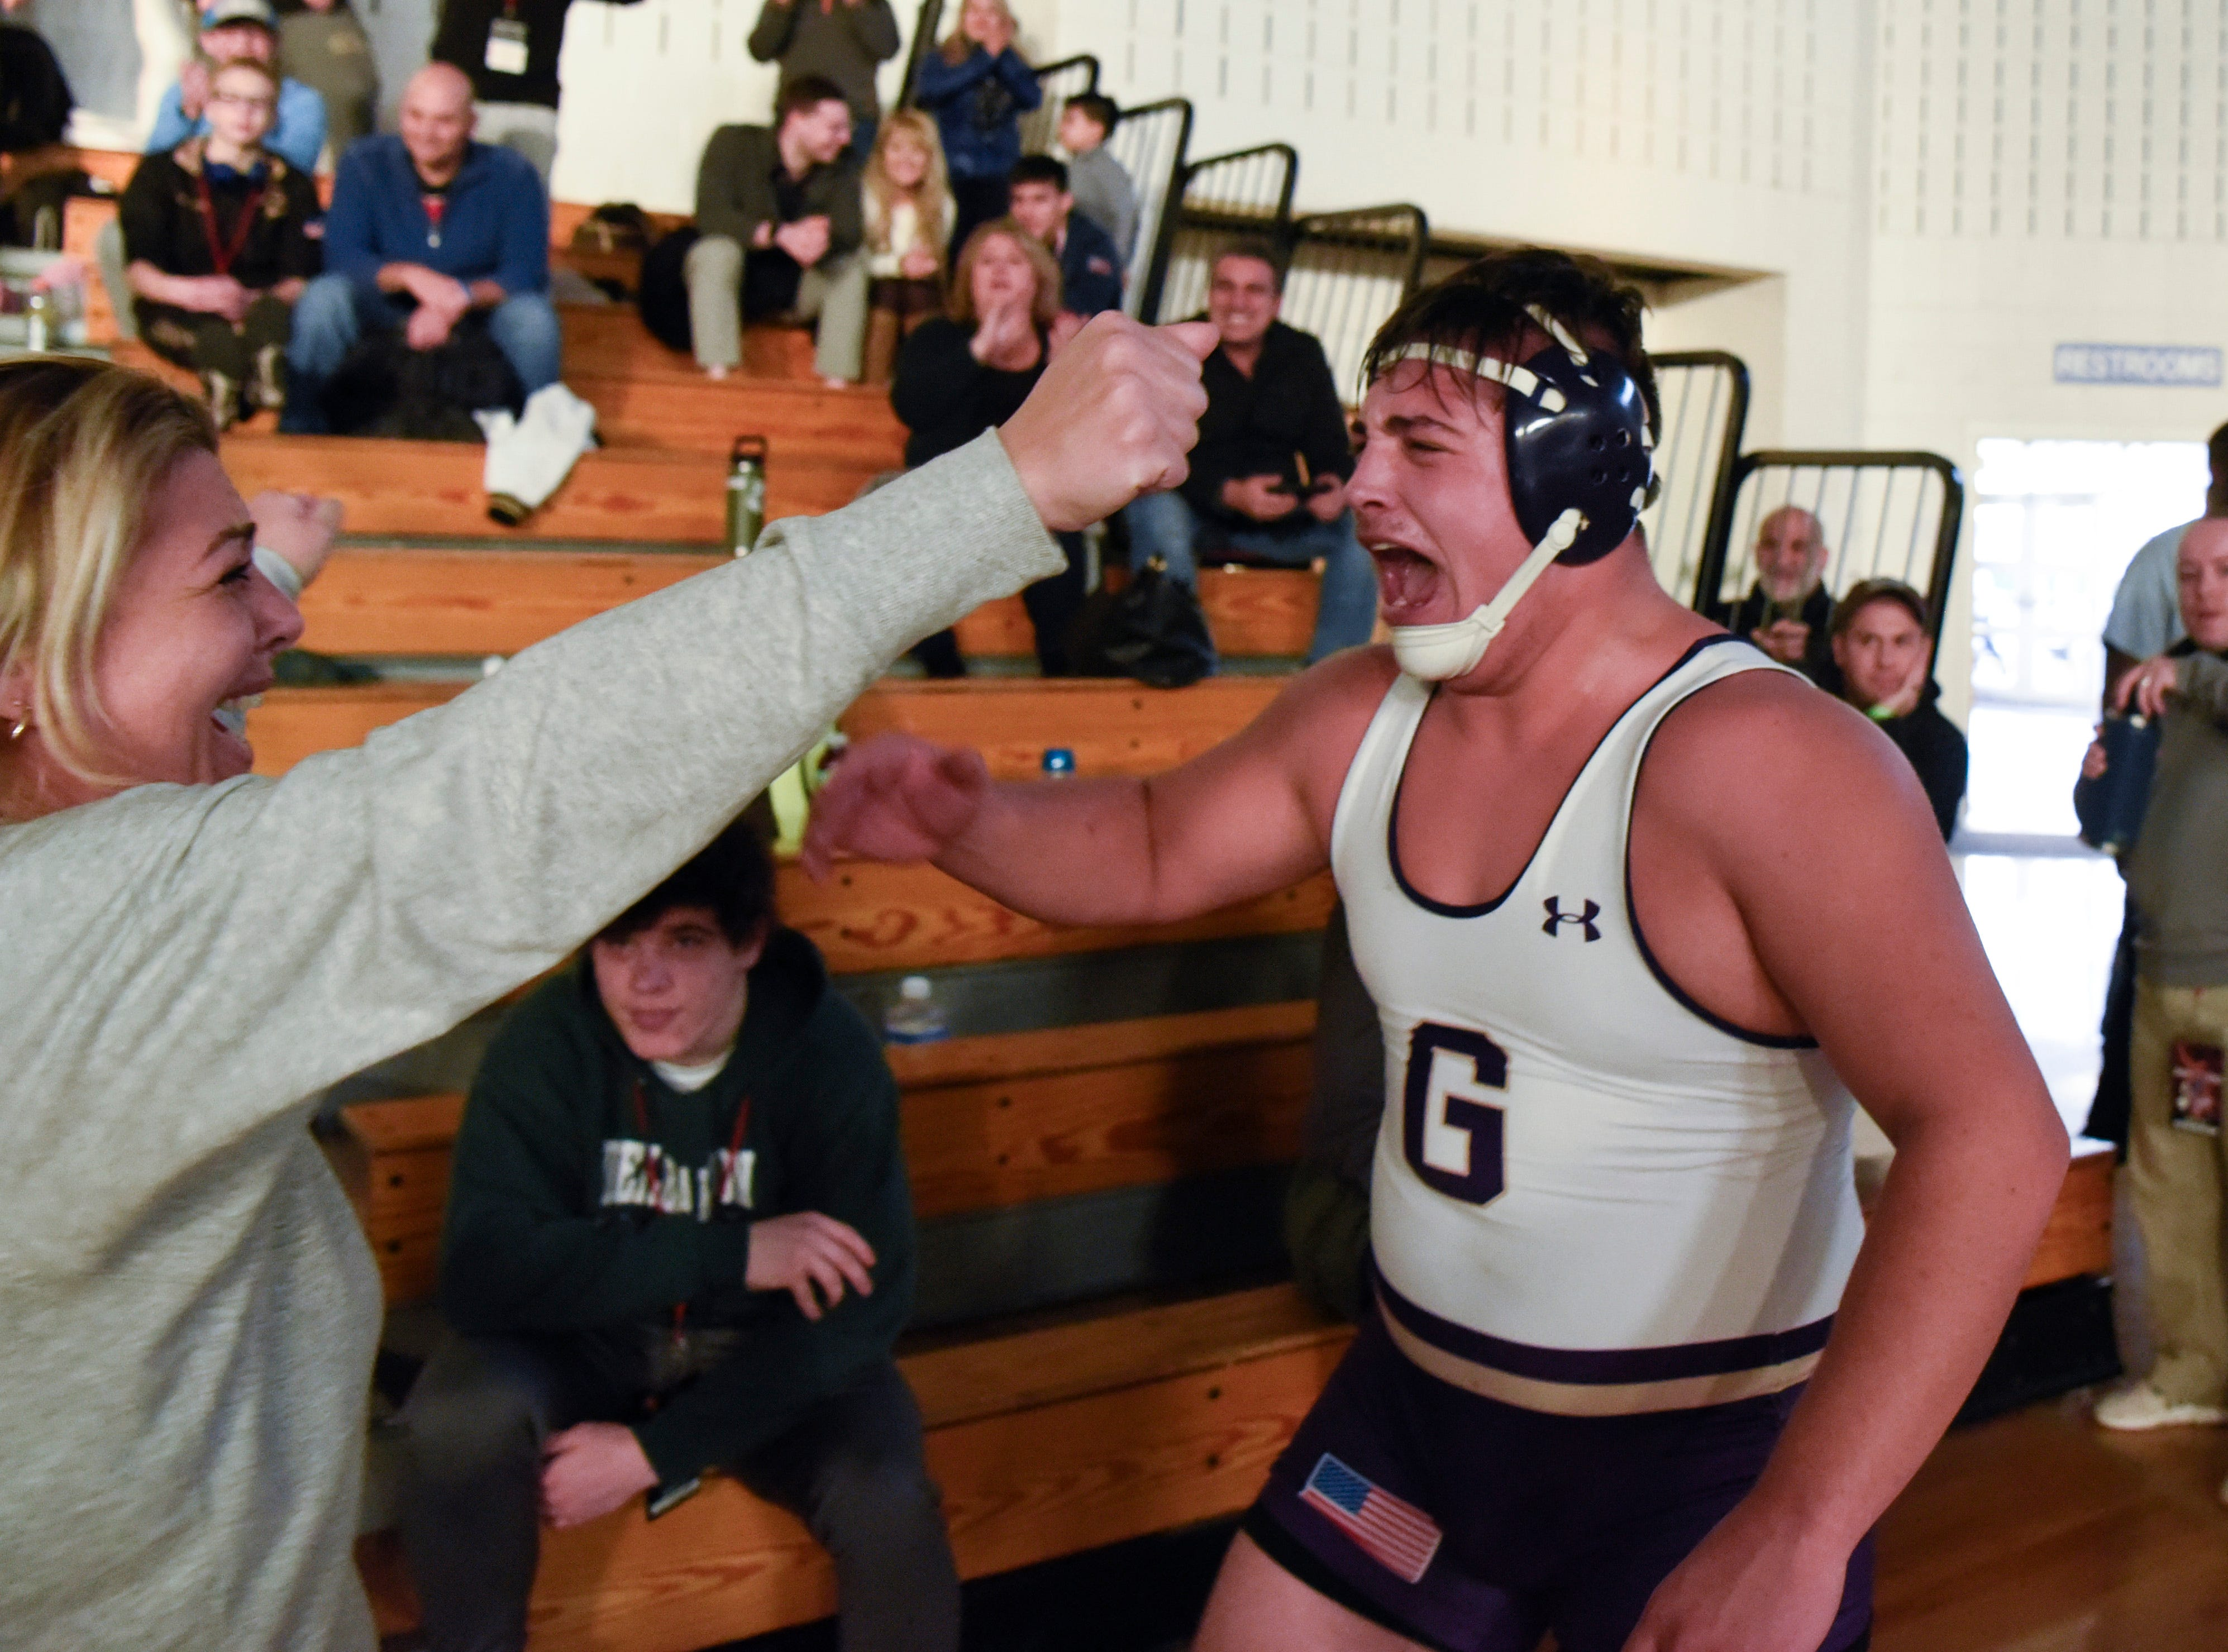 Michael Filieri of Garfield, right, celebrates his win with his mom Frances Filieri for the 220-pound title at the Sam Cali Battle for the Belt final on Sunday, Jan. 6, 2019, in West Orange.